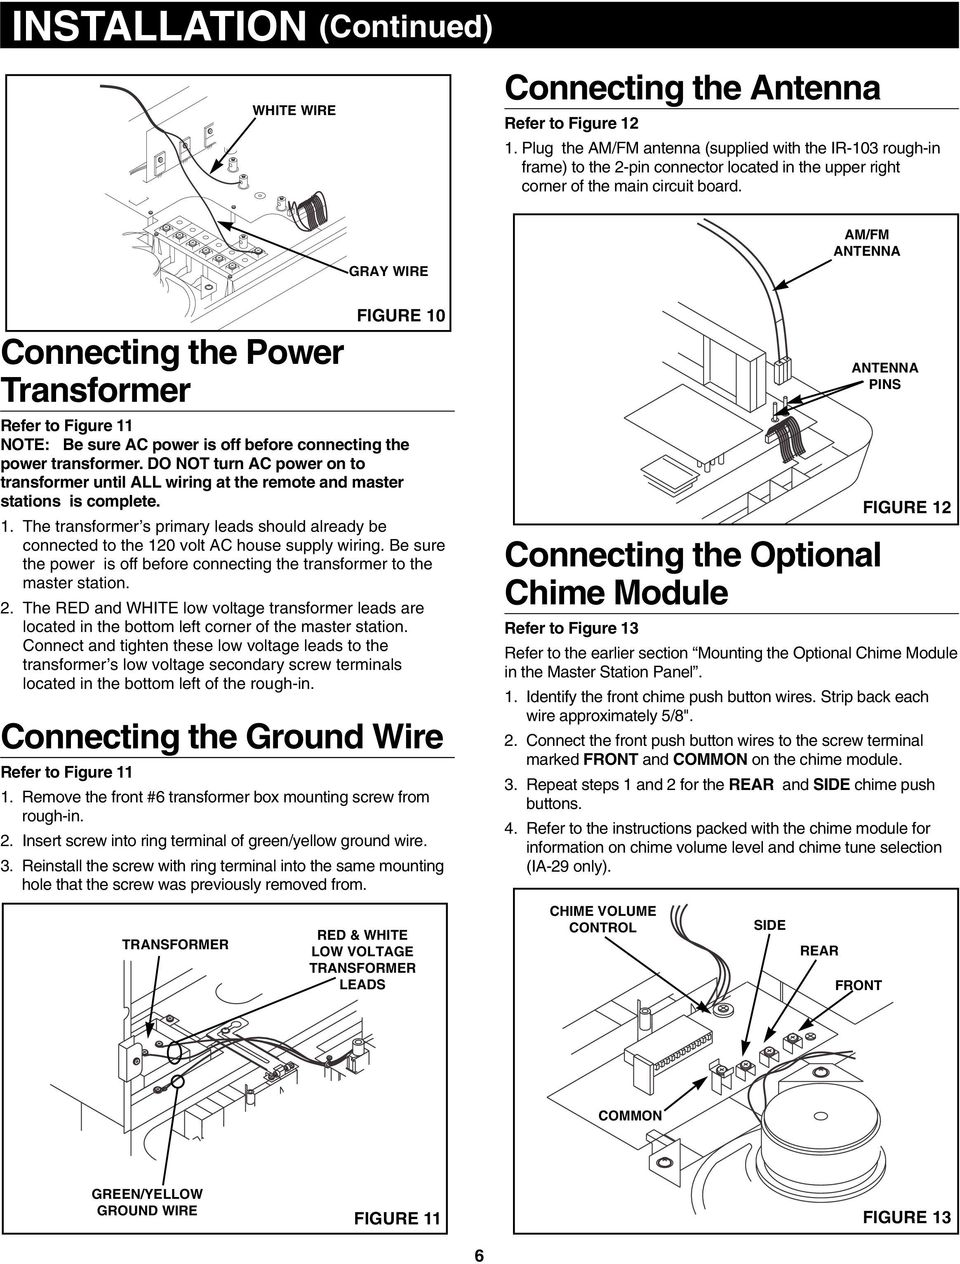 Radio Intercom System Pdf Volume Control Wiring Diagram For Nutone Wall Gray Wire Am Fm Antenna Connecting The Power Transformer Refer To Figure 11 Note